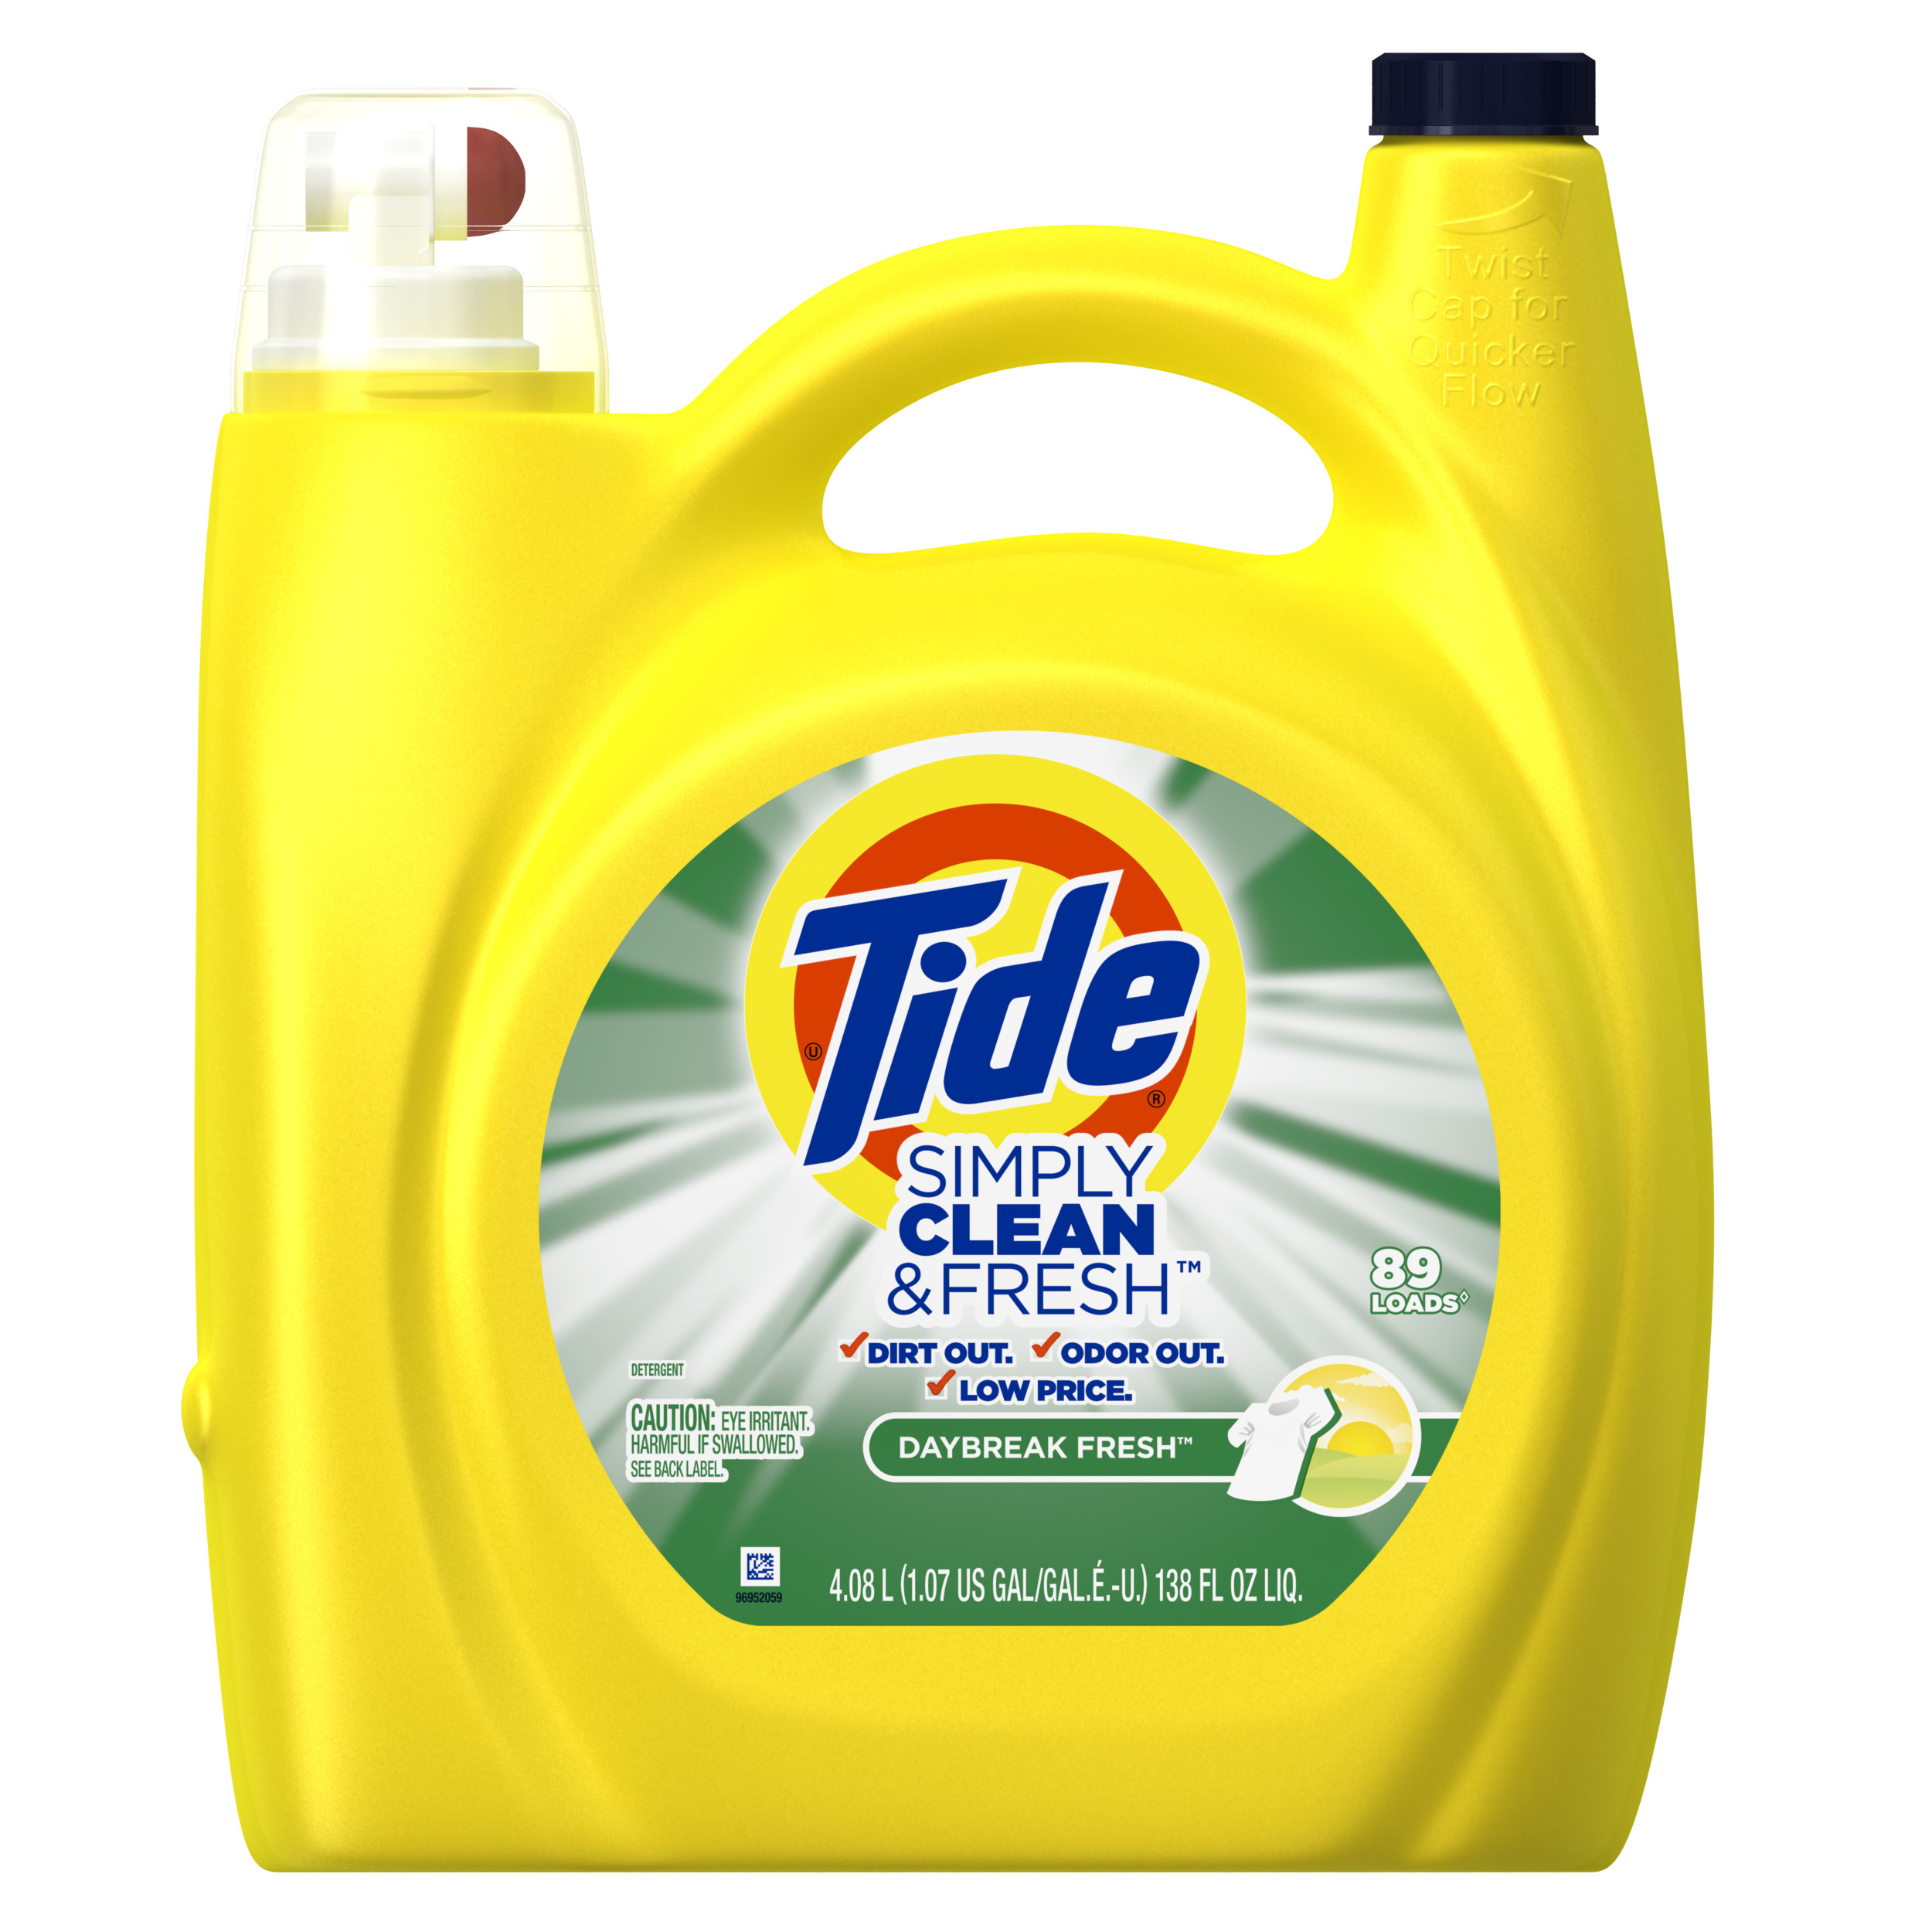 Tide Simply Clean and Fresh, Daybreak Fresh, Liquid Laundry Detergent, 89 Loads, 138 fl oz